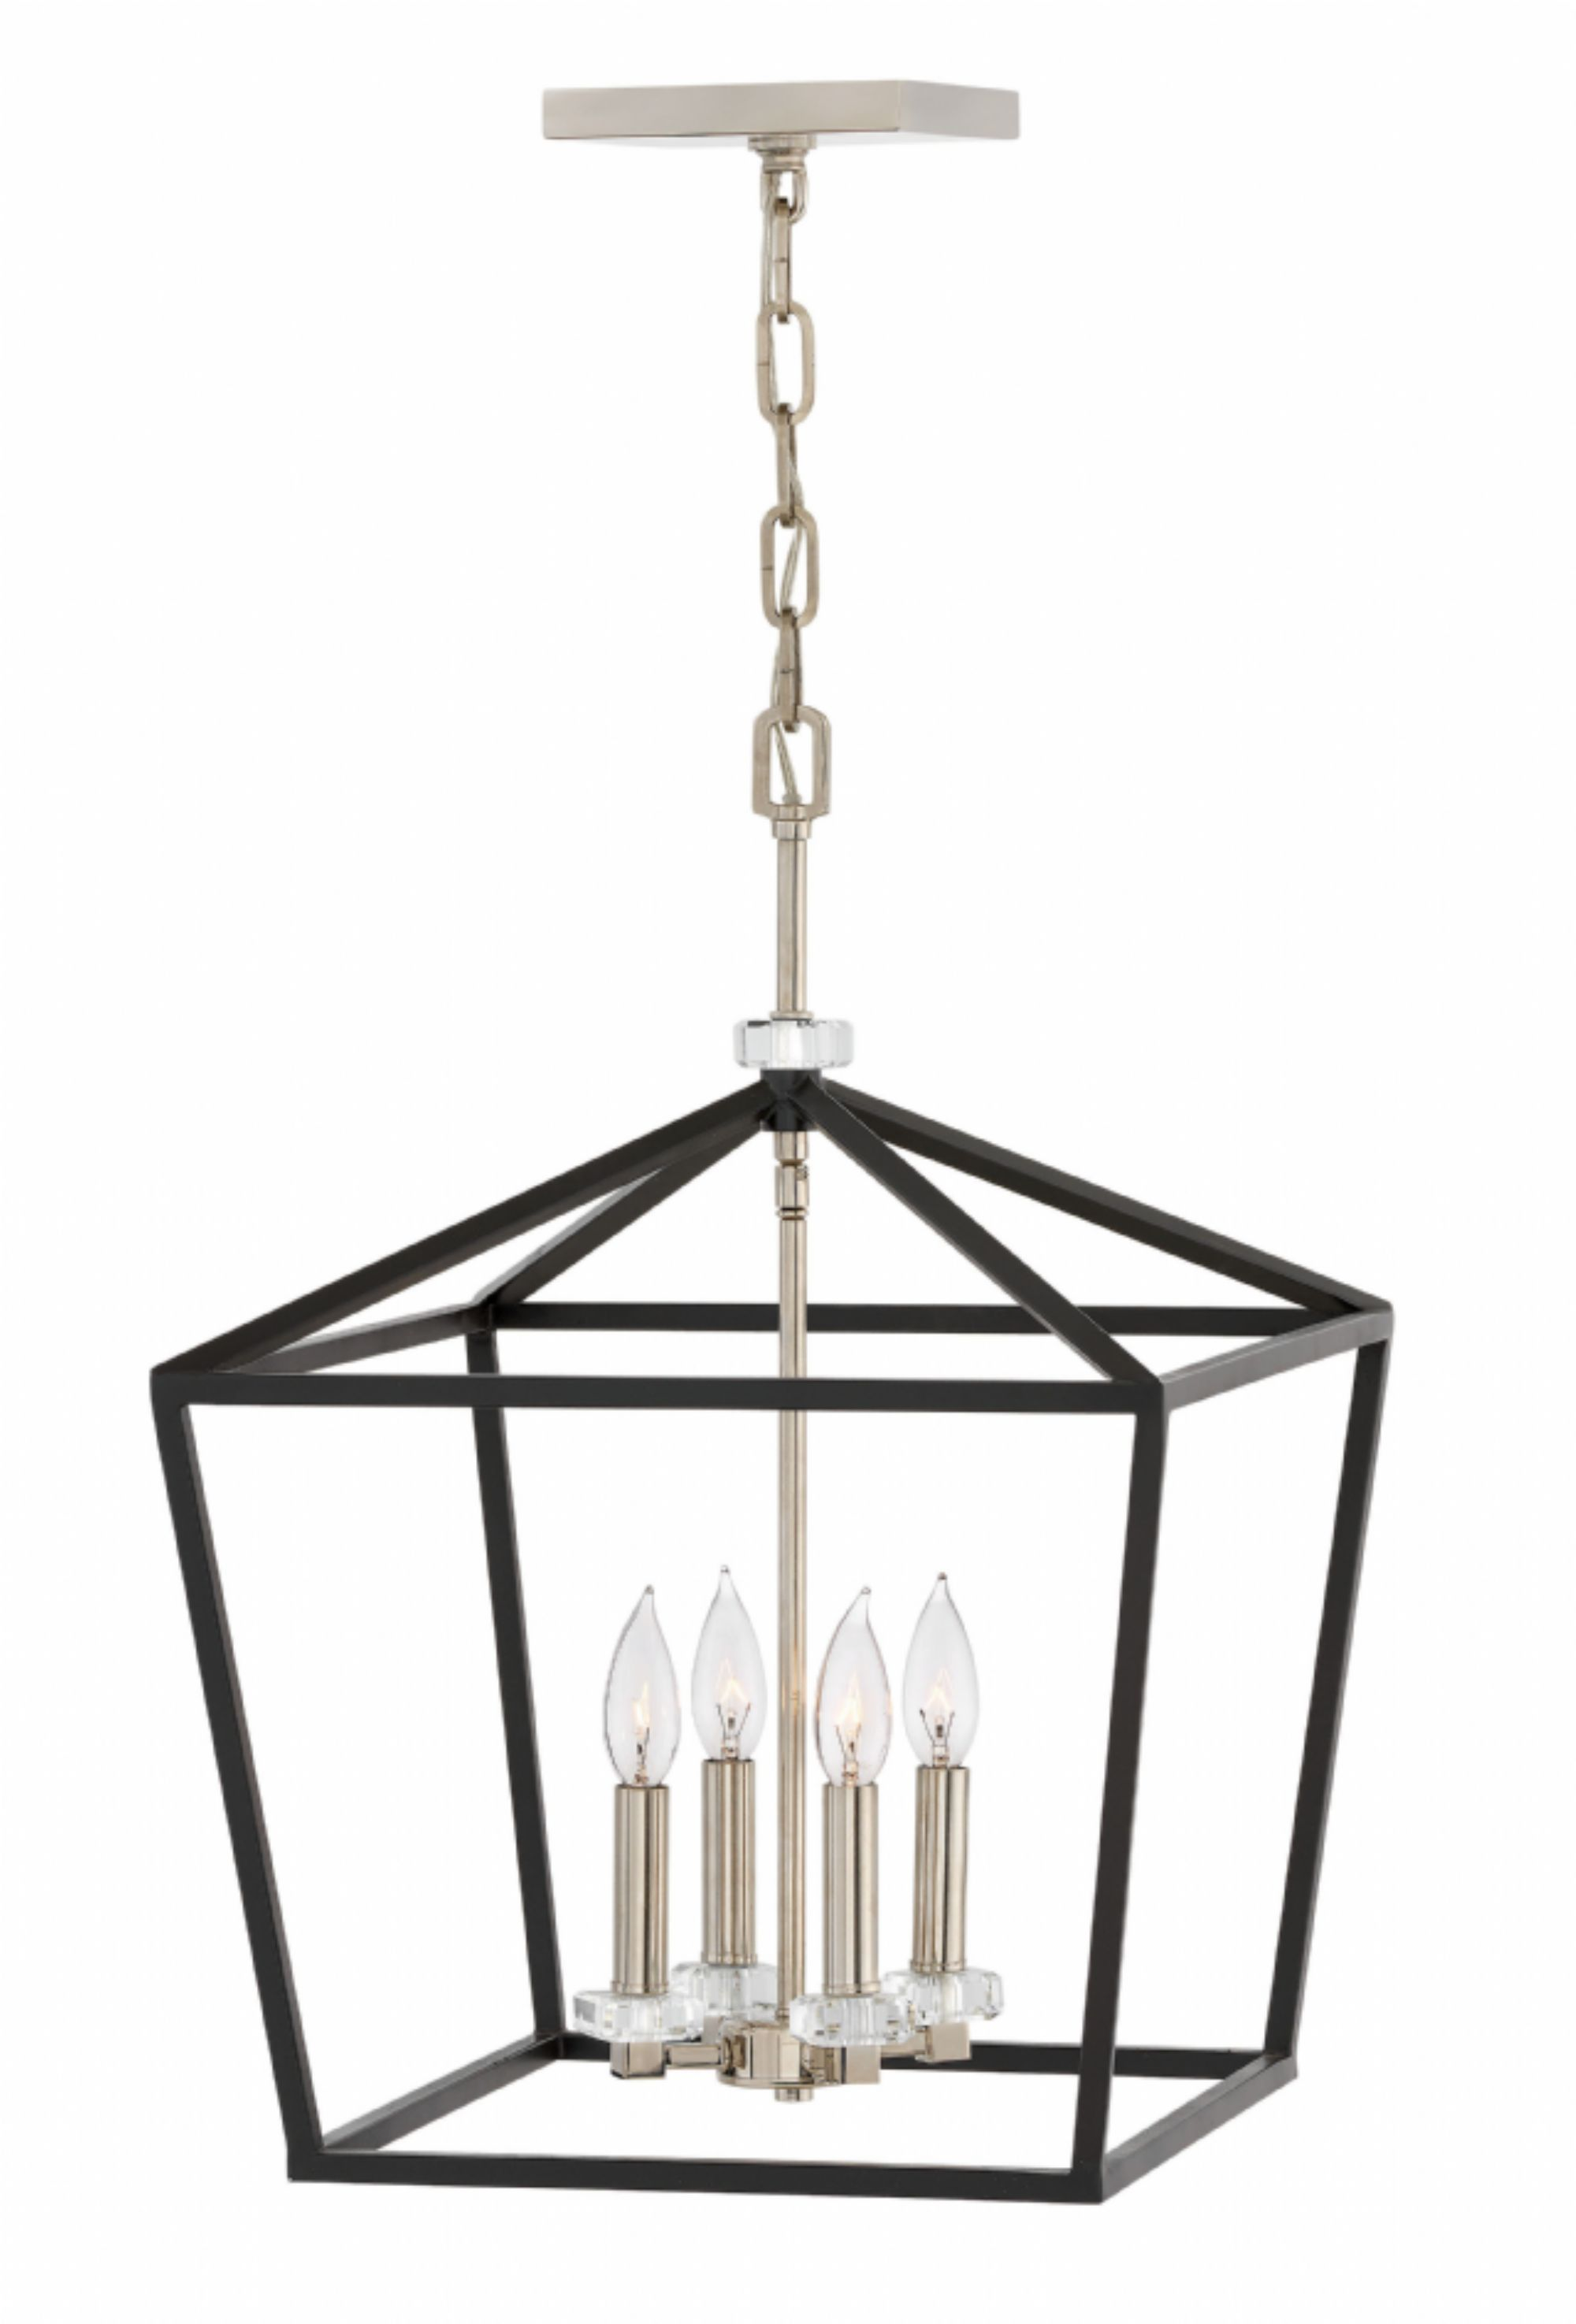 Hinkley Lighting Carries Many Black Stinson Interior Hanging Light Fixtures That Can Be Used To Enhance The Earance And Of Any Home